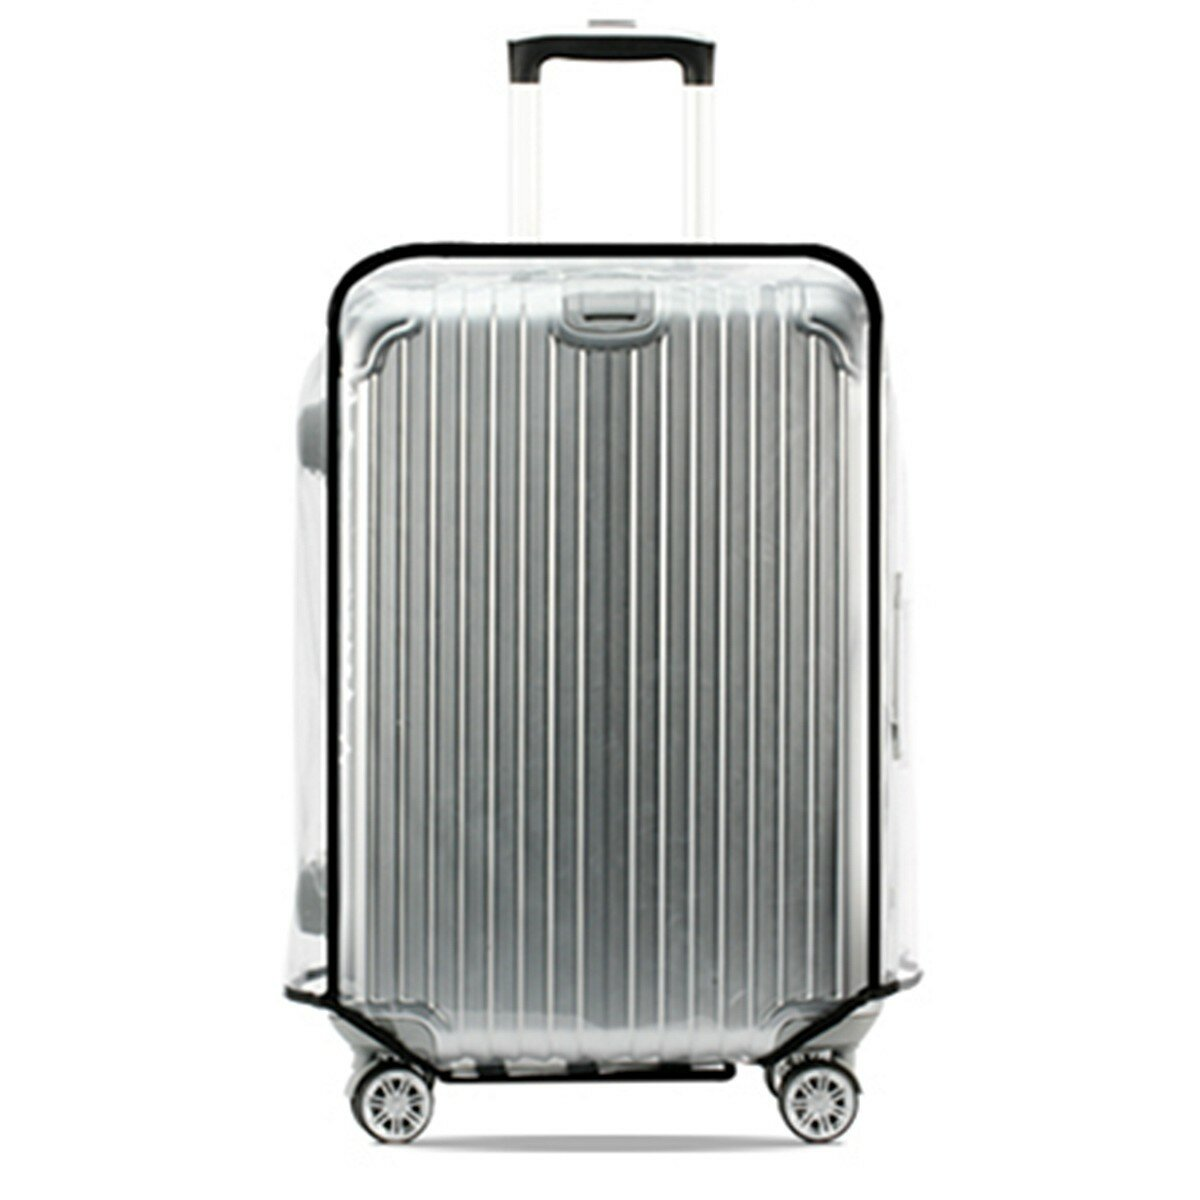 591a7ce4a Universal Waterproof Transparent Protective Luggage Cover Suitcase Case  Travel - 28inch COD